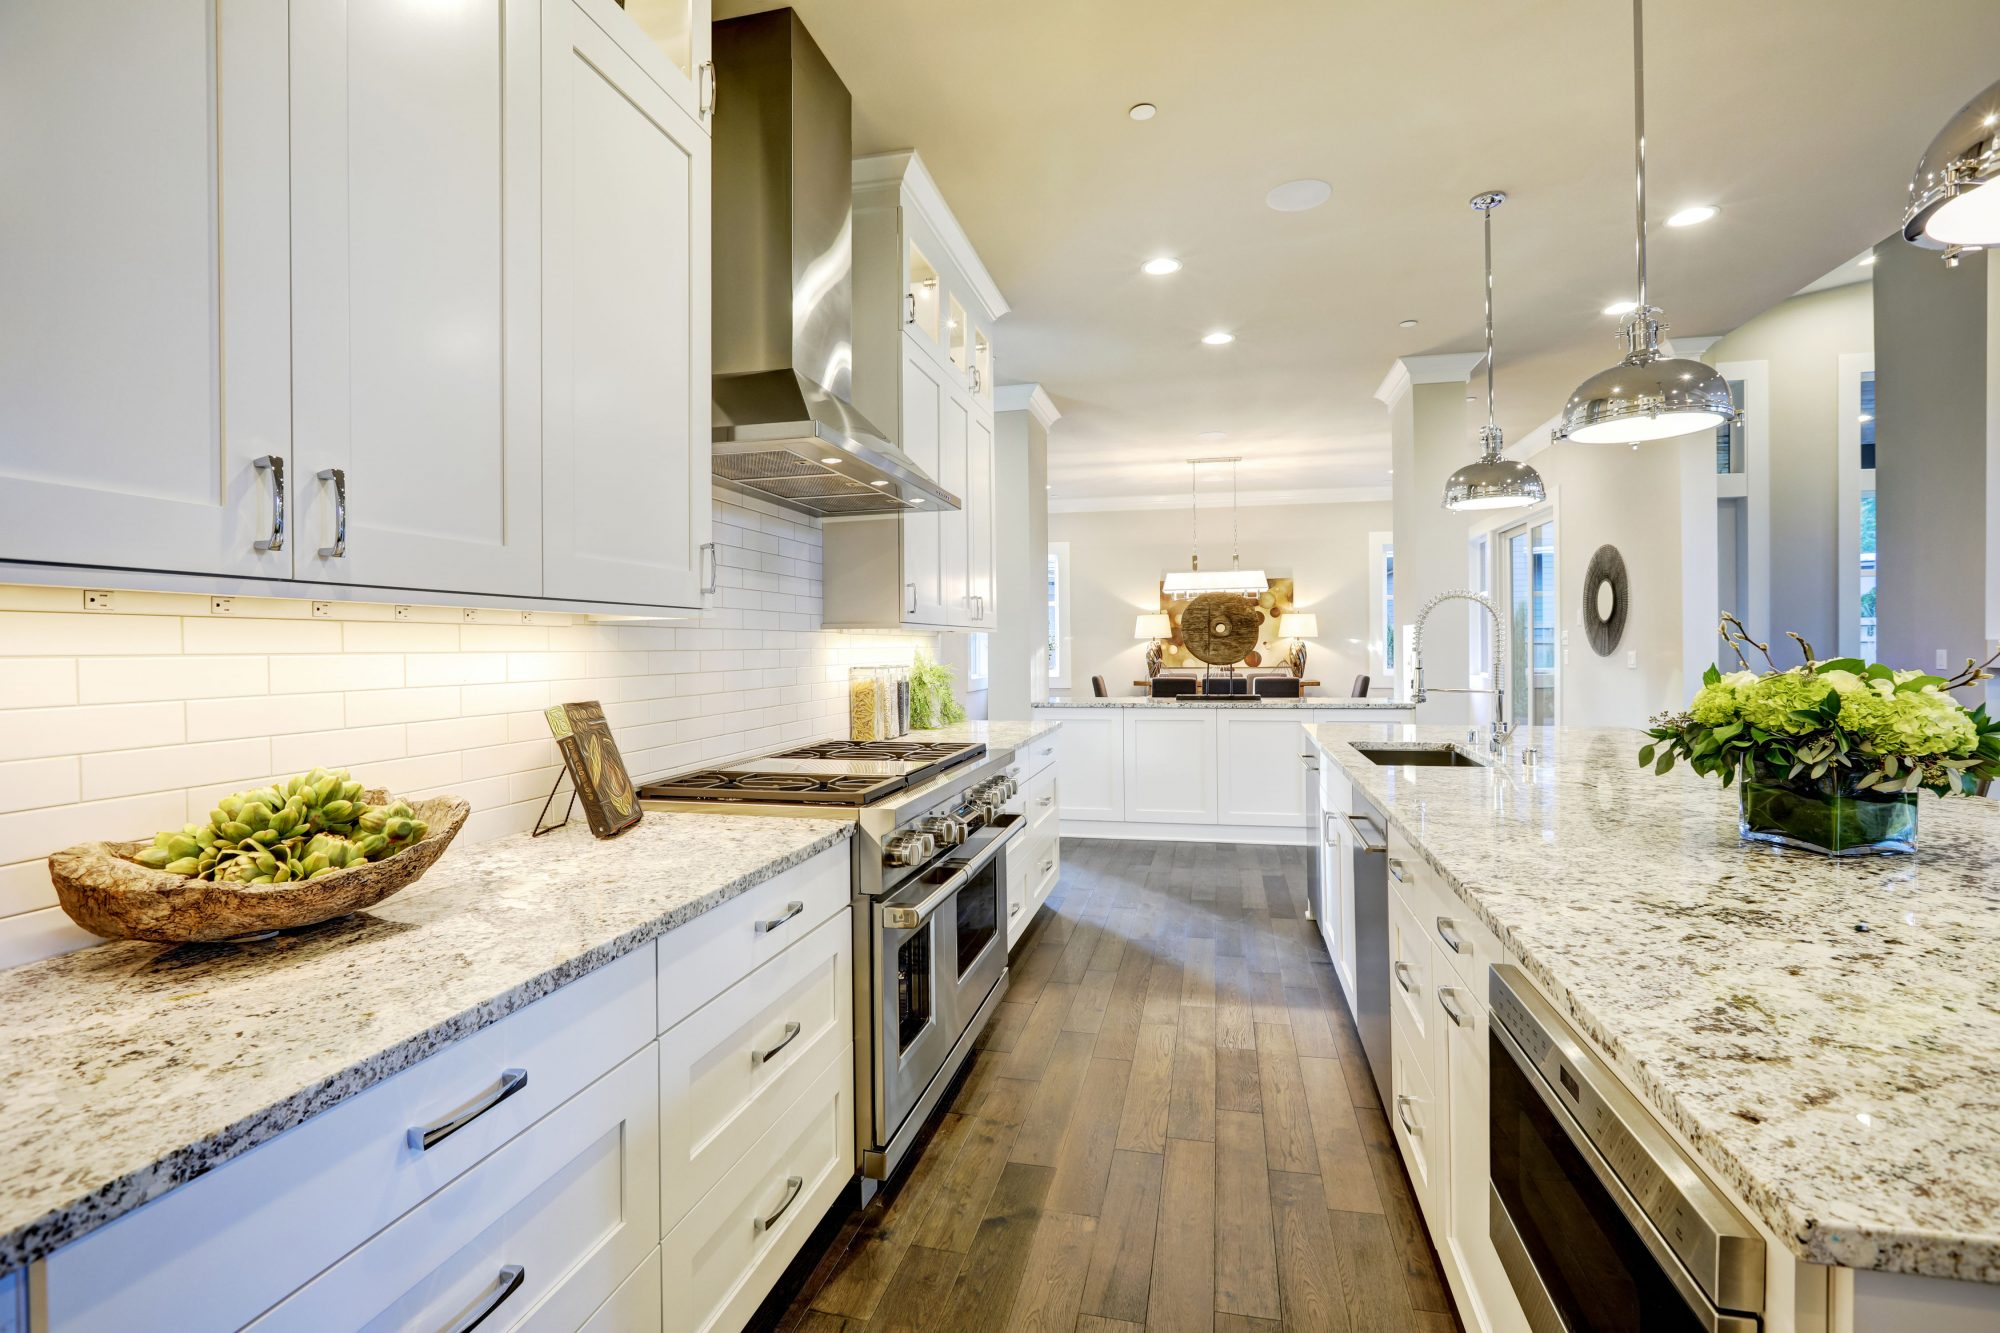 5 Charming Kitchen Makeover Tricks (No Reno Required!) - Southern Living